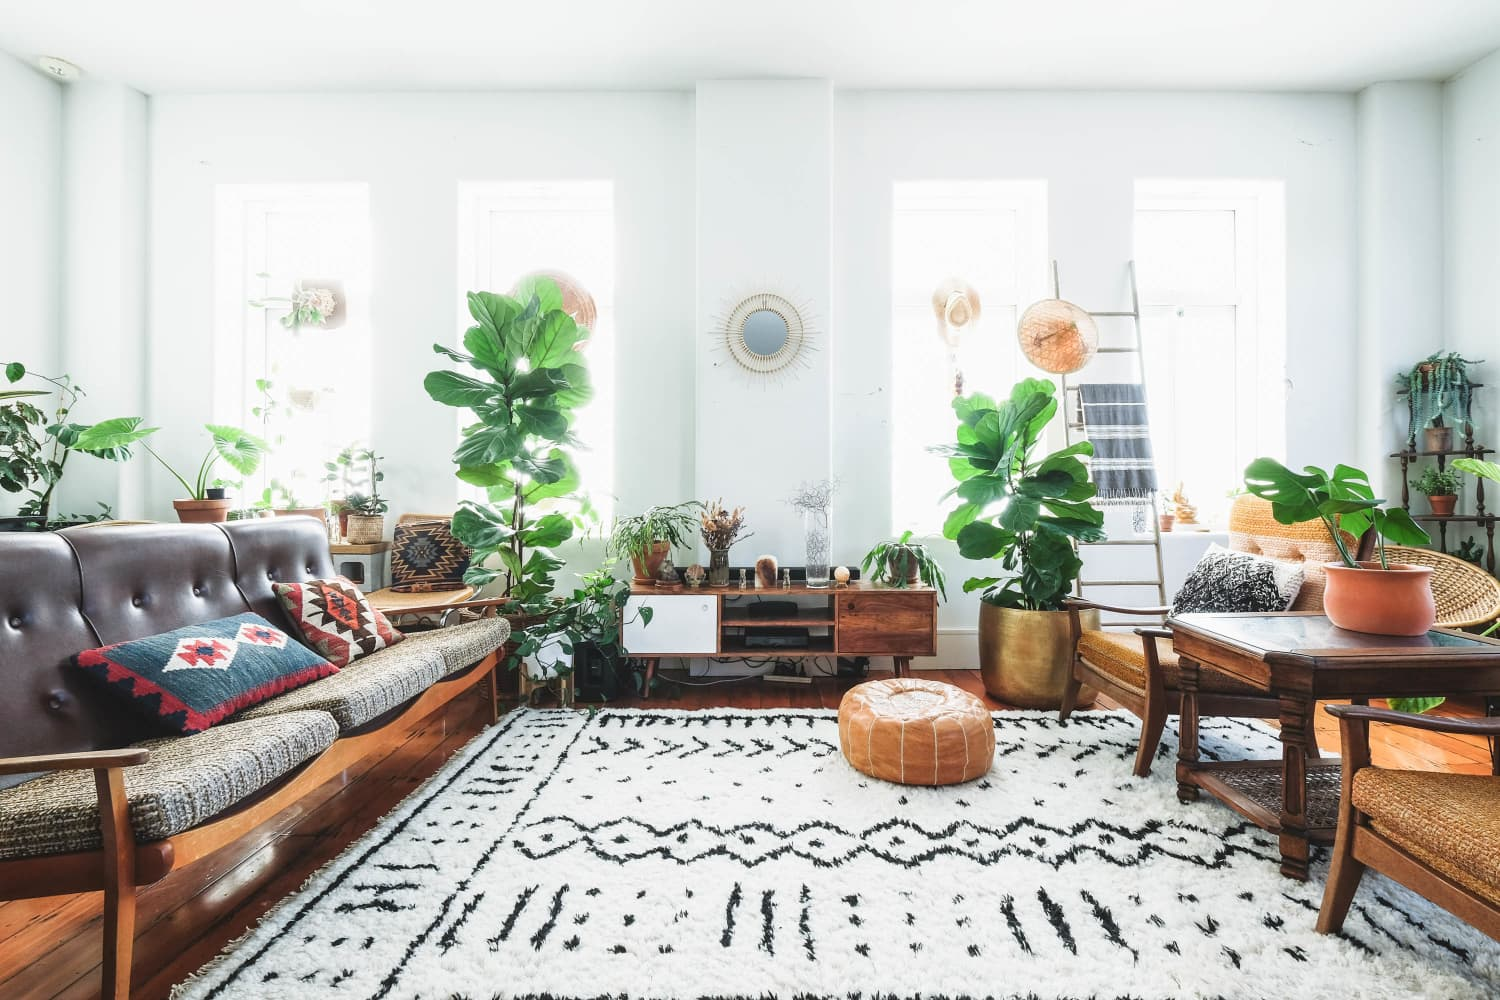 This Under-the-Radar Brand Makes Chic Rugs That Are Water-Resistant, Machine-Washable, and Affordable